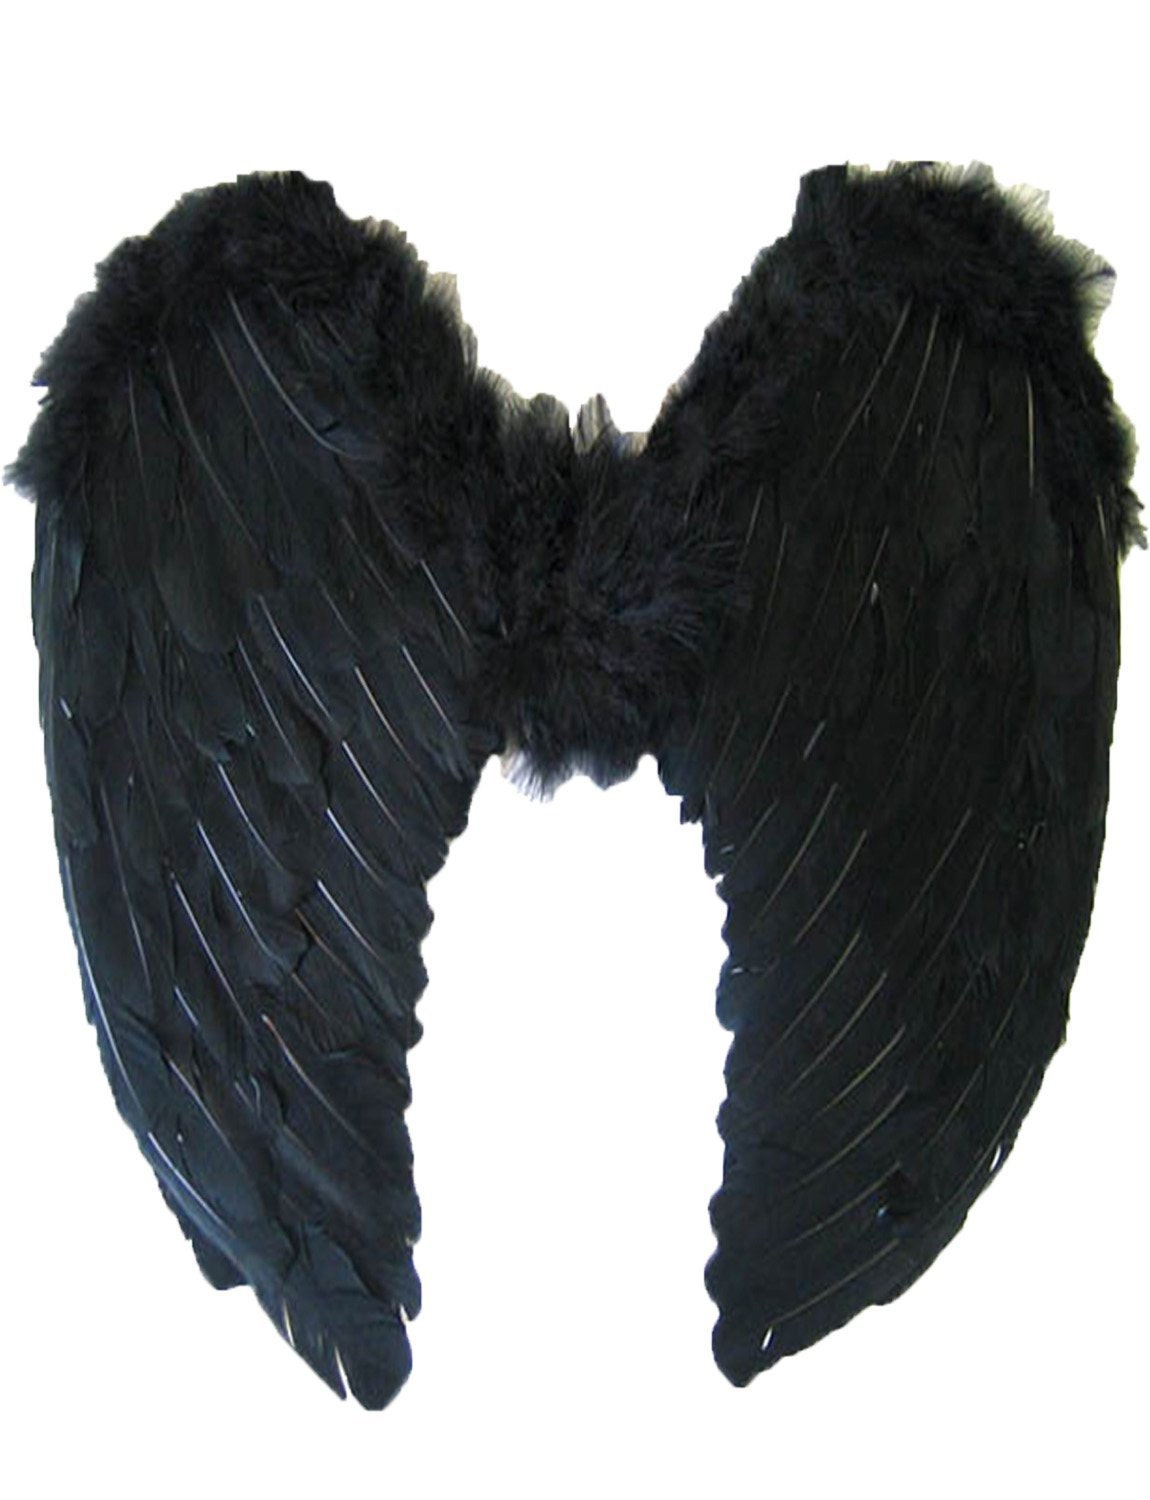 Halloween Large Black Feather Wing Deluxe Real Feathers